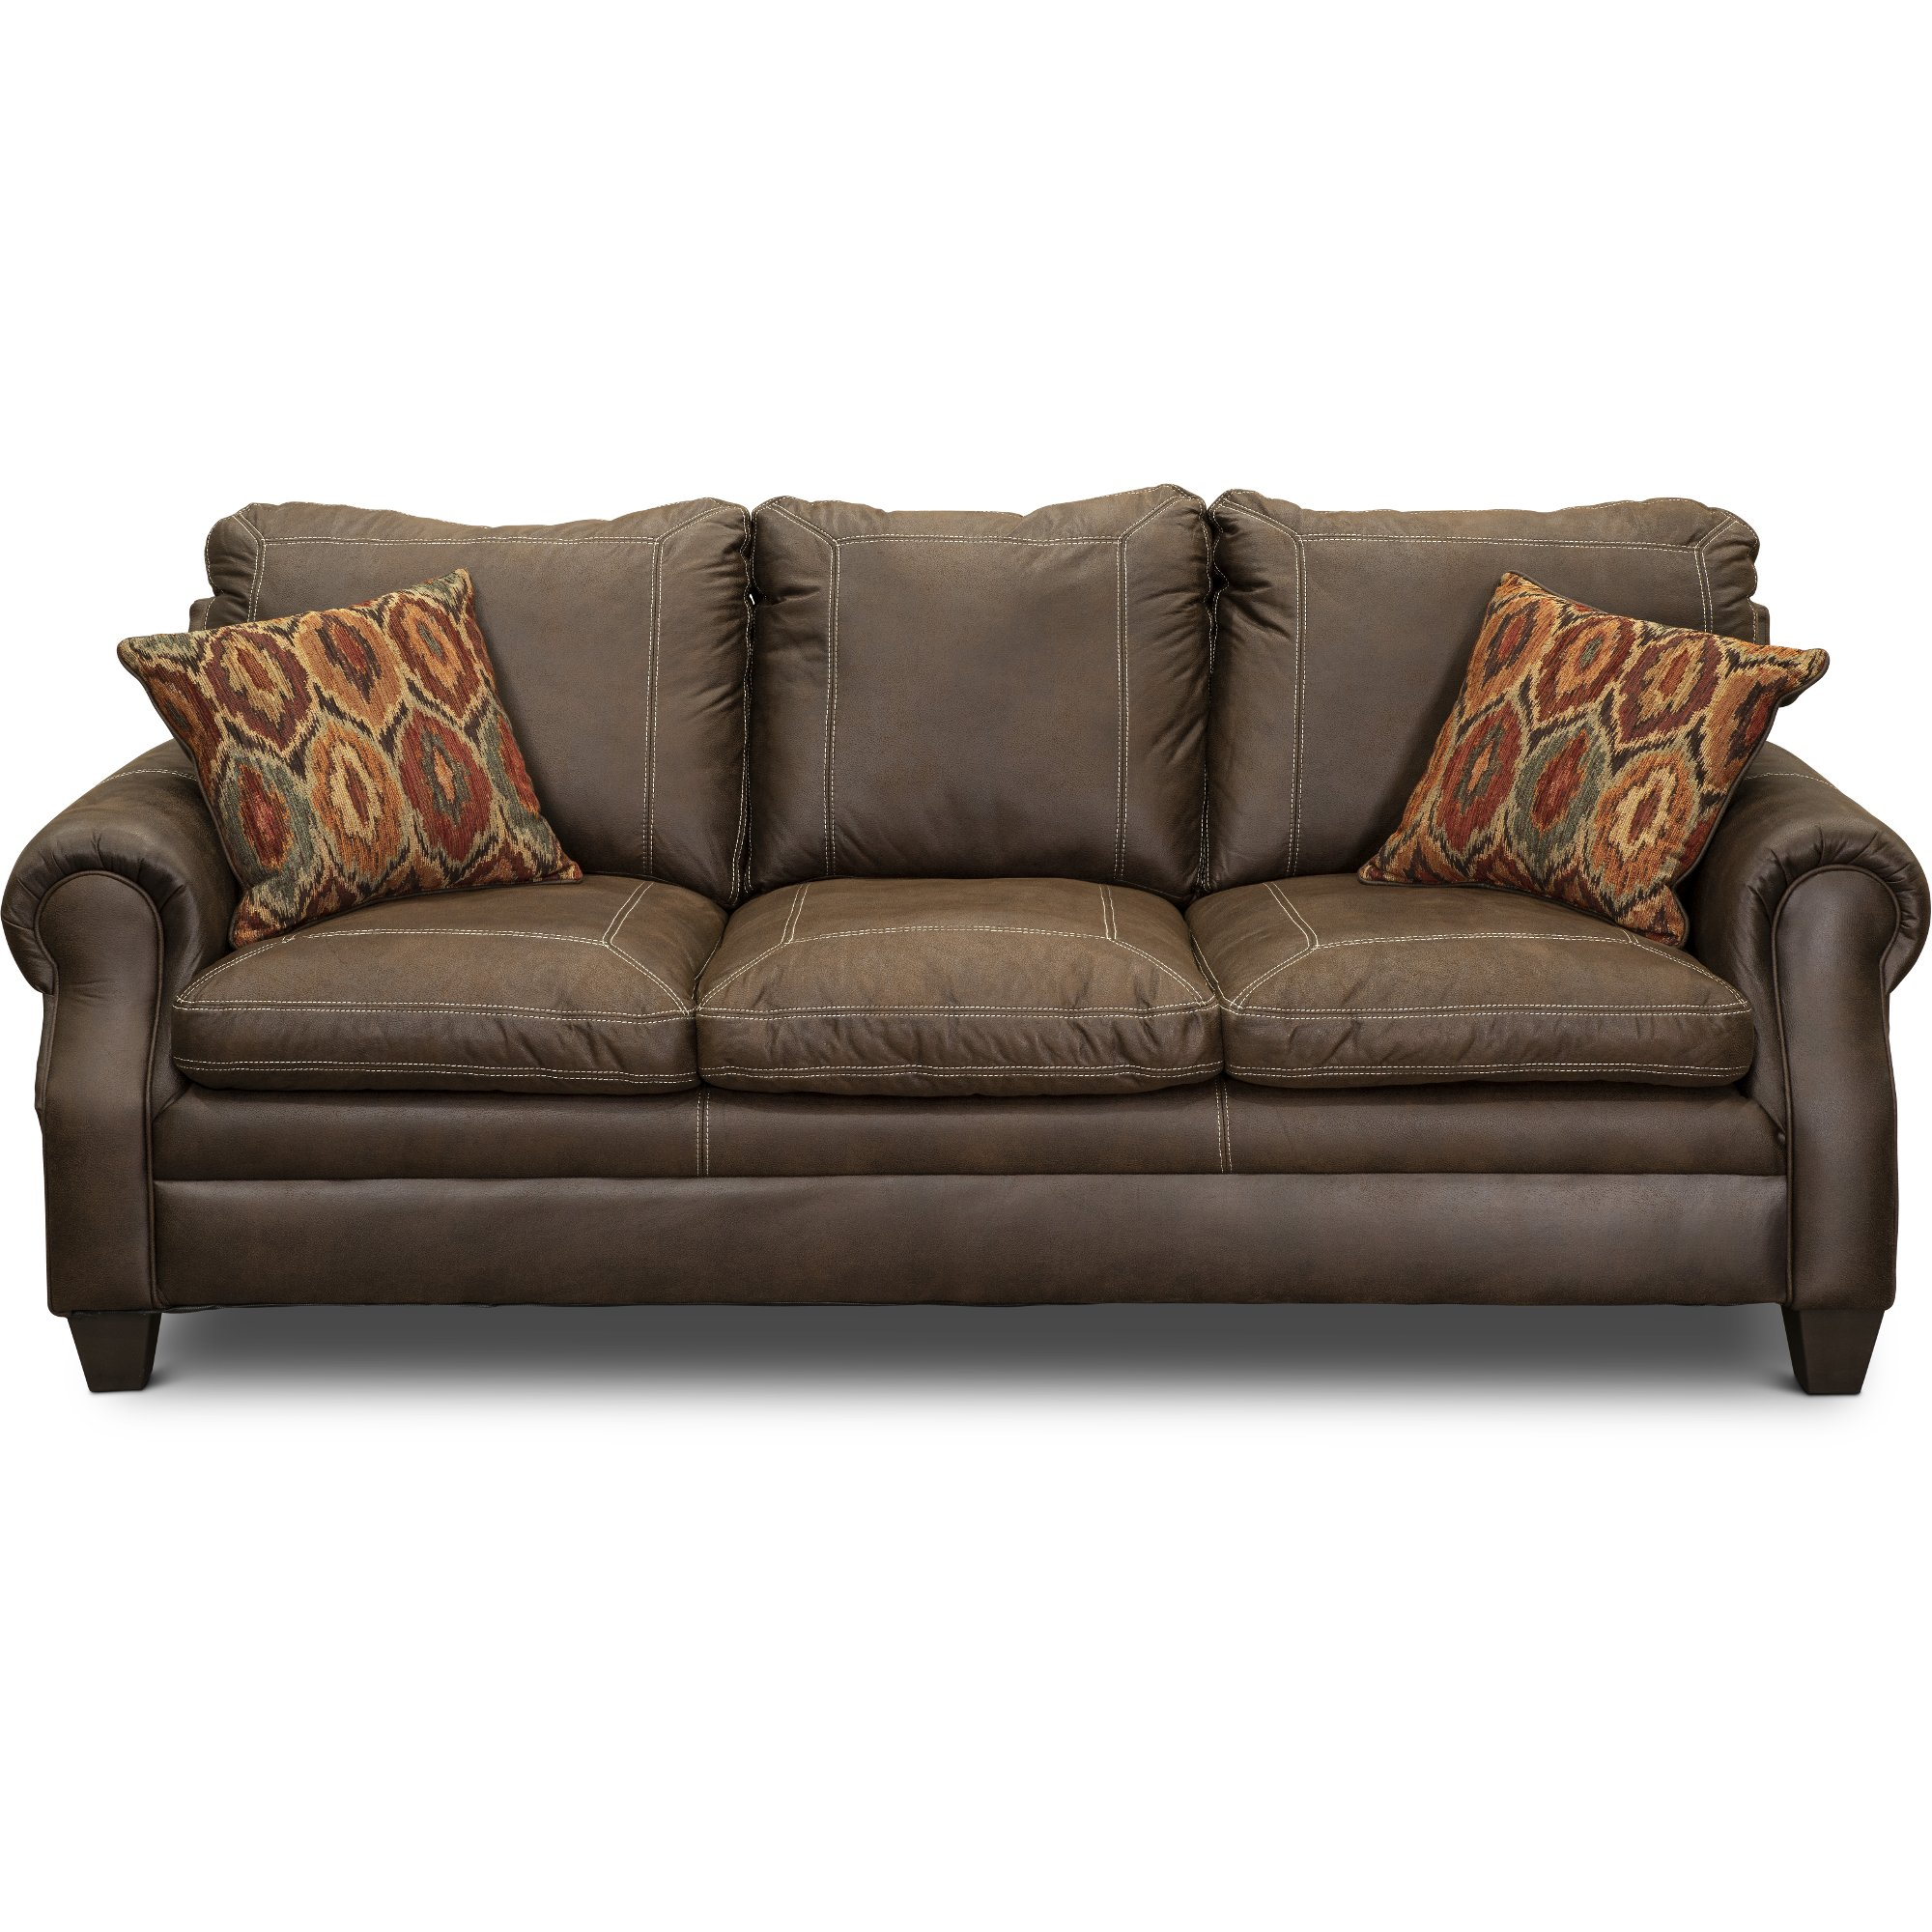 Living Room Furniture Couches living room picture bedroom design